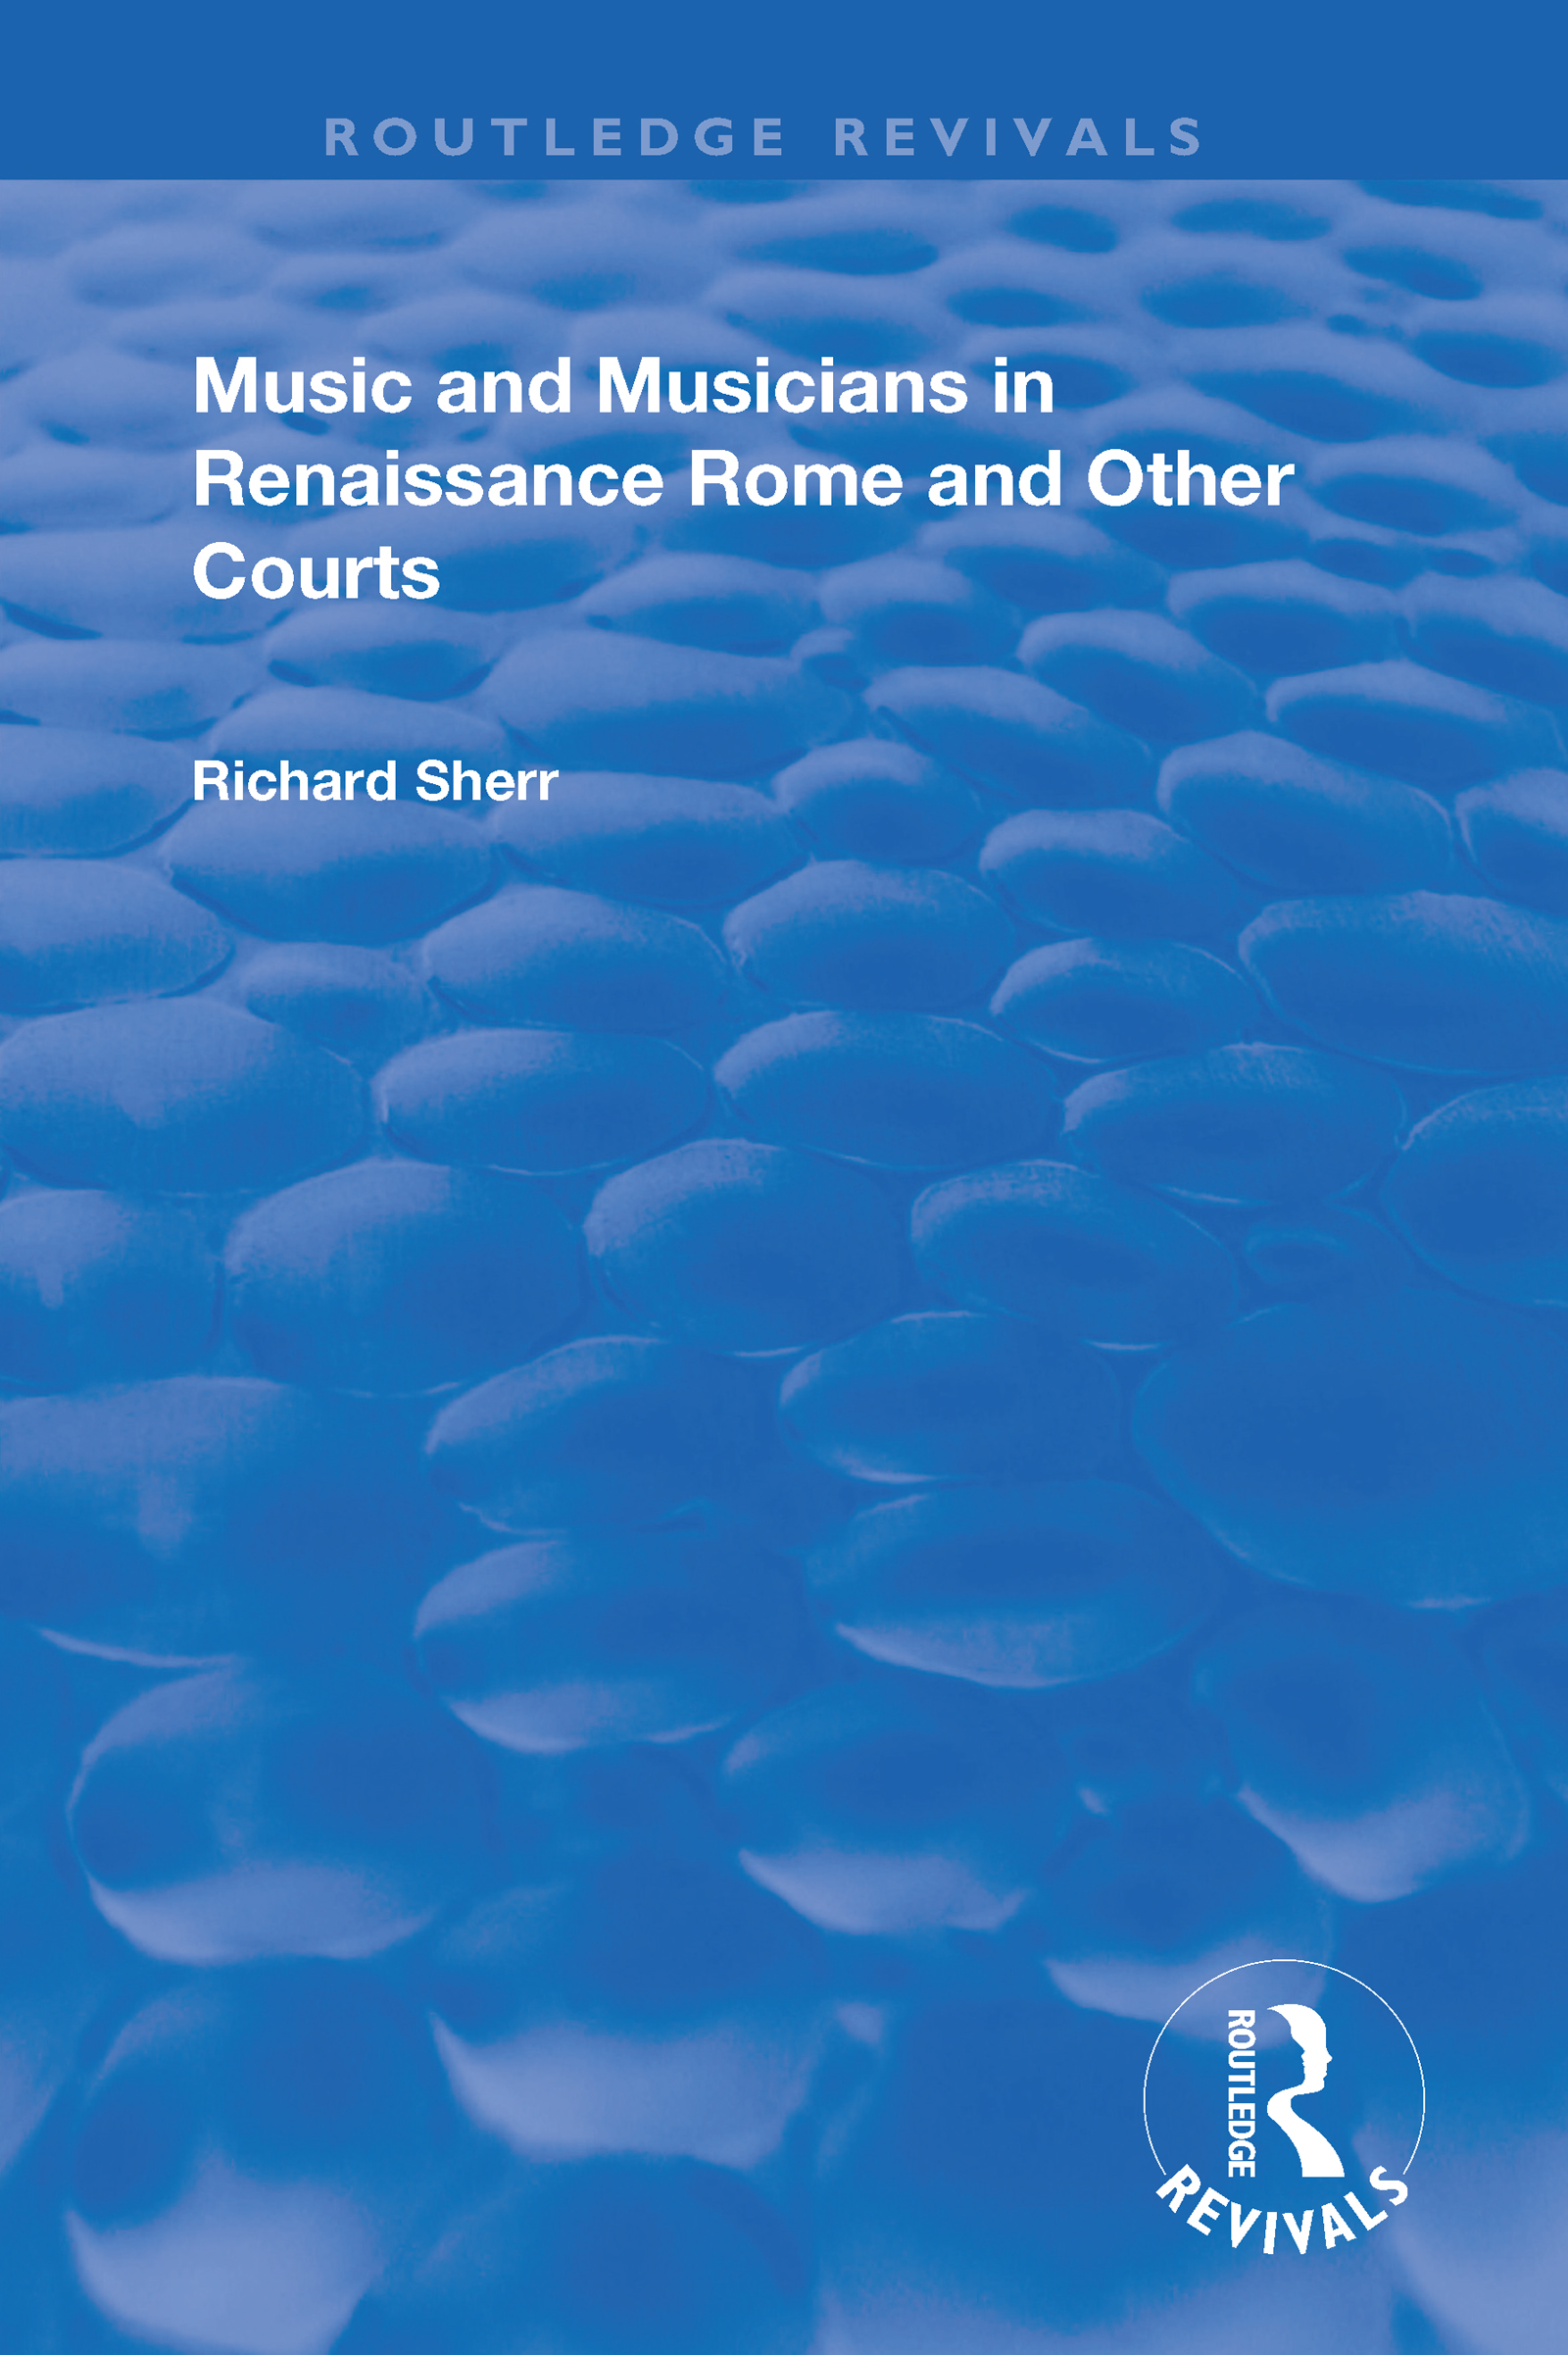 Music and Musicians in Renaissance Rome and Other Courts